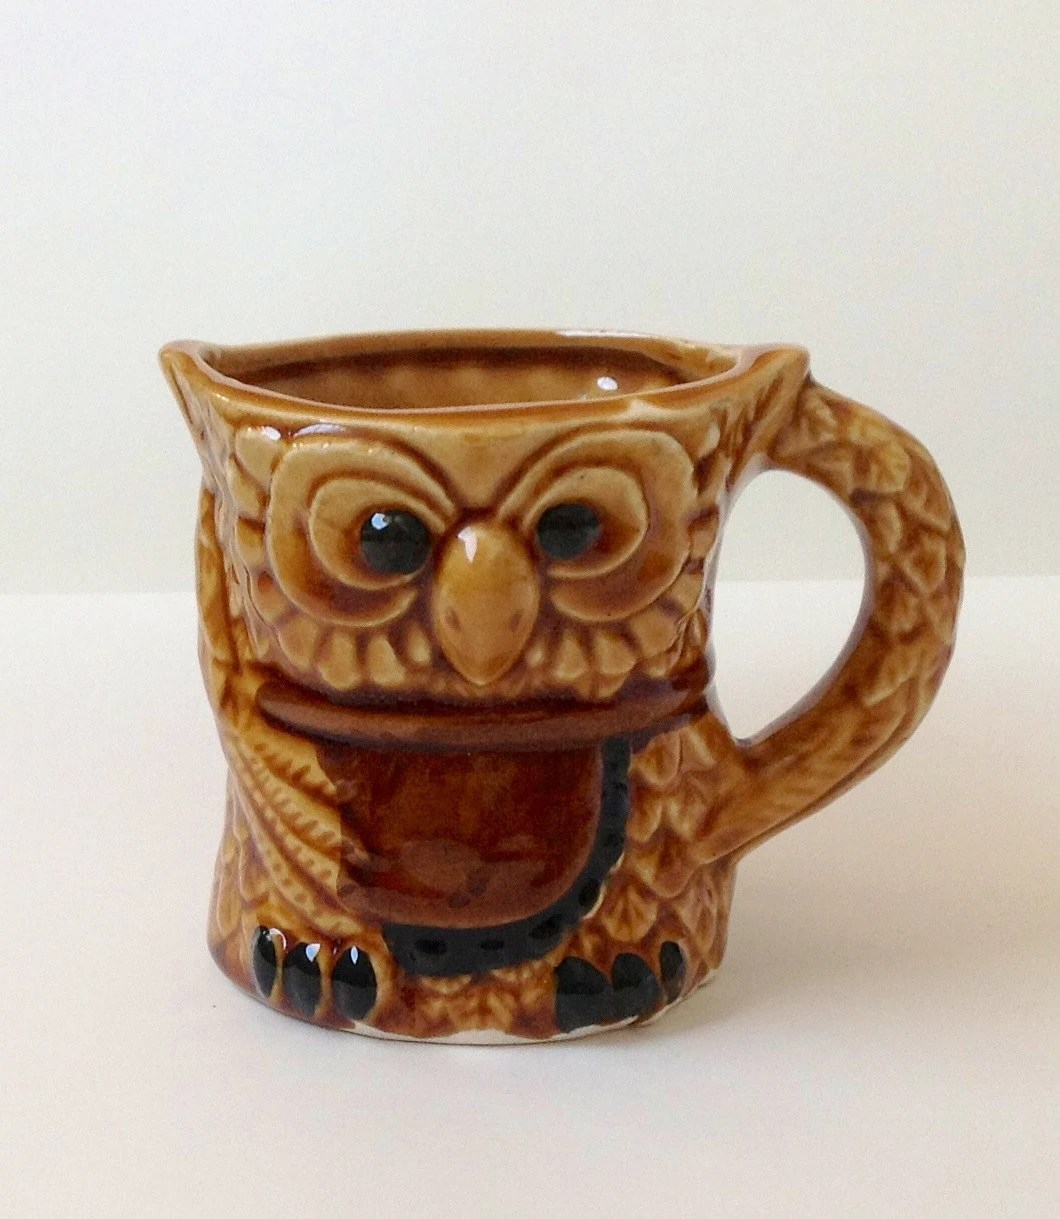 Owl Ceramic Mug Owl Mug On Sale Vintage Ceramic Coffee Cup By Fostandlound